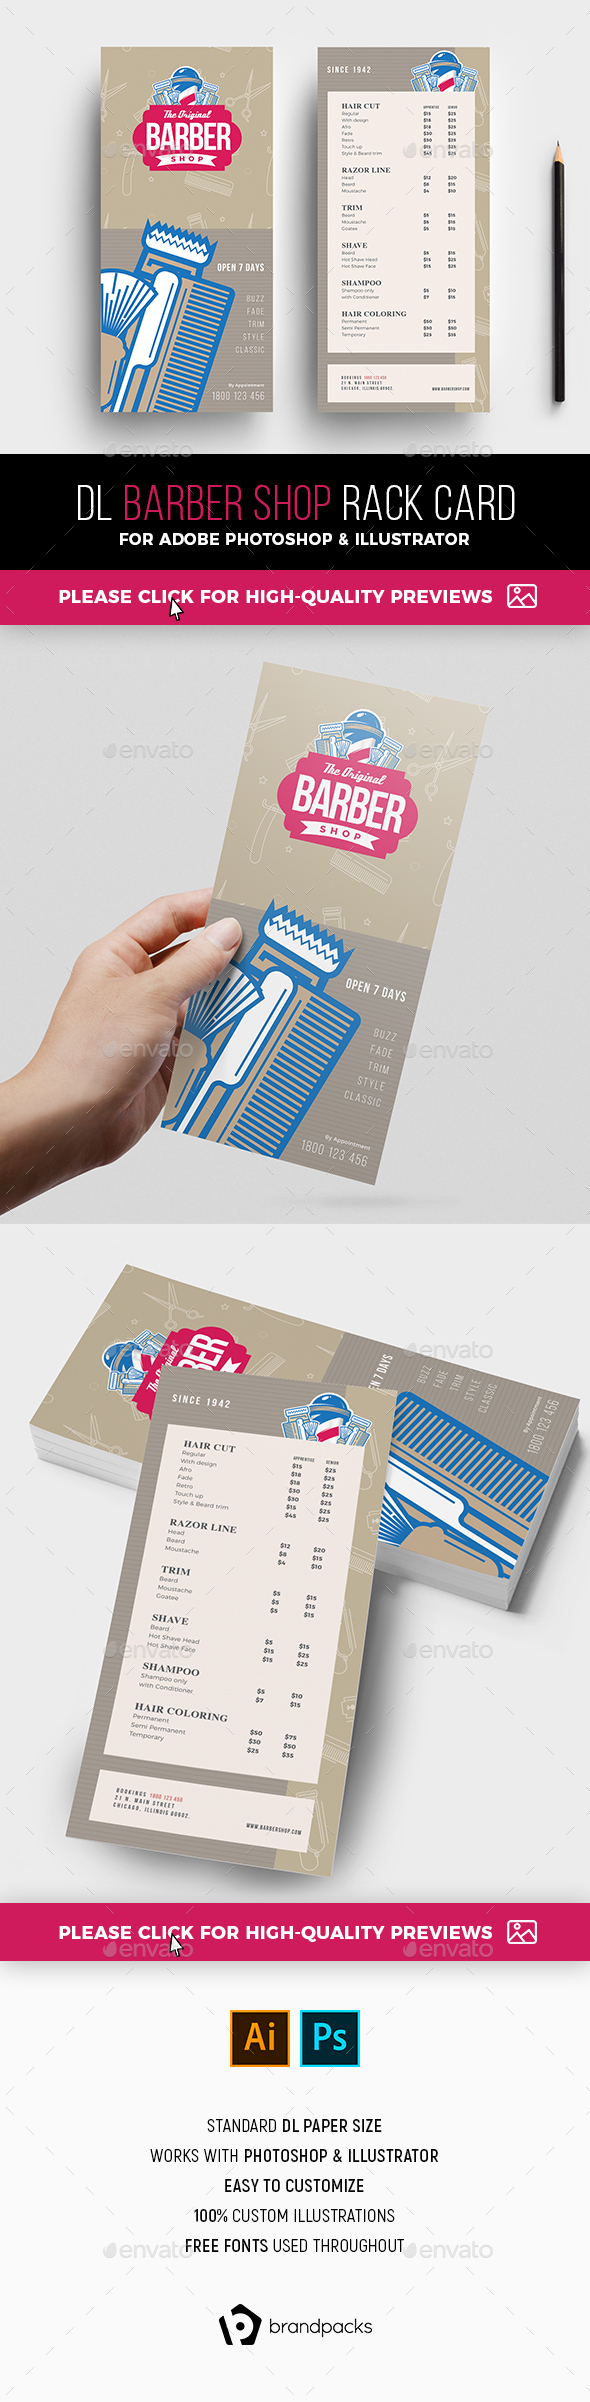 Barber Shop Rack Card Template - Corporate Flyers